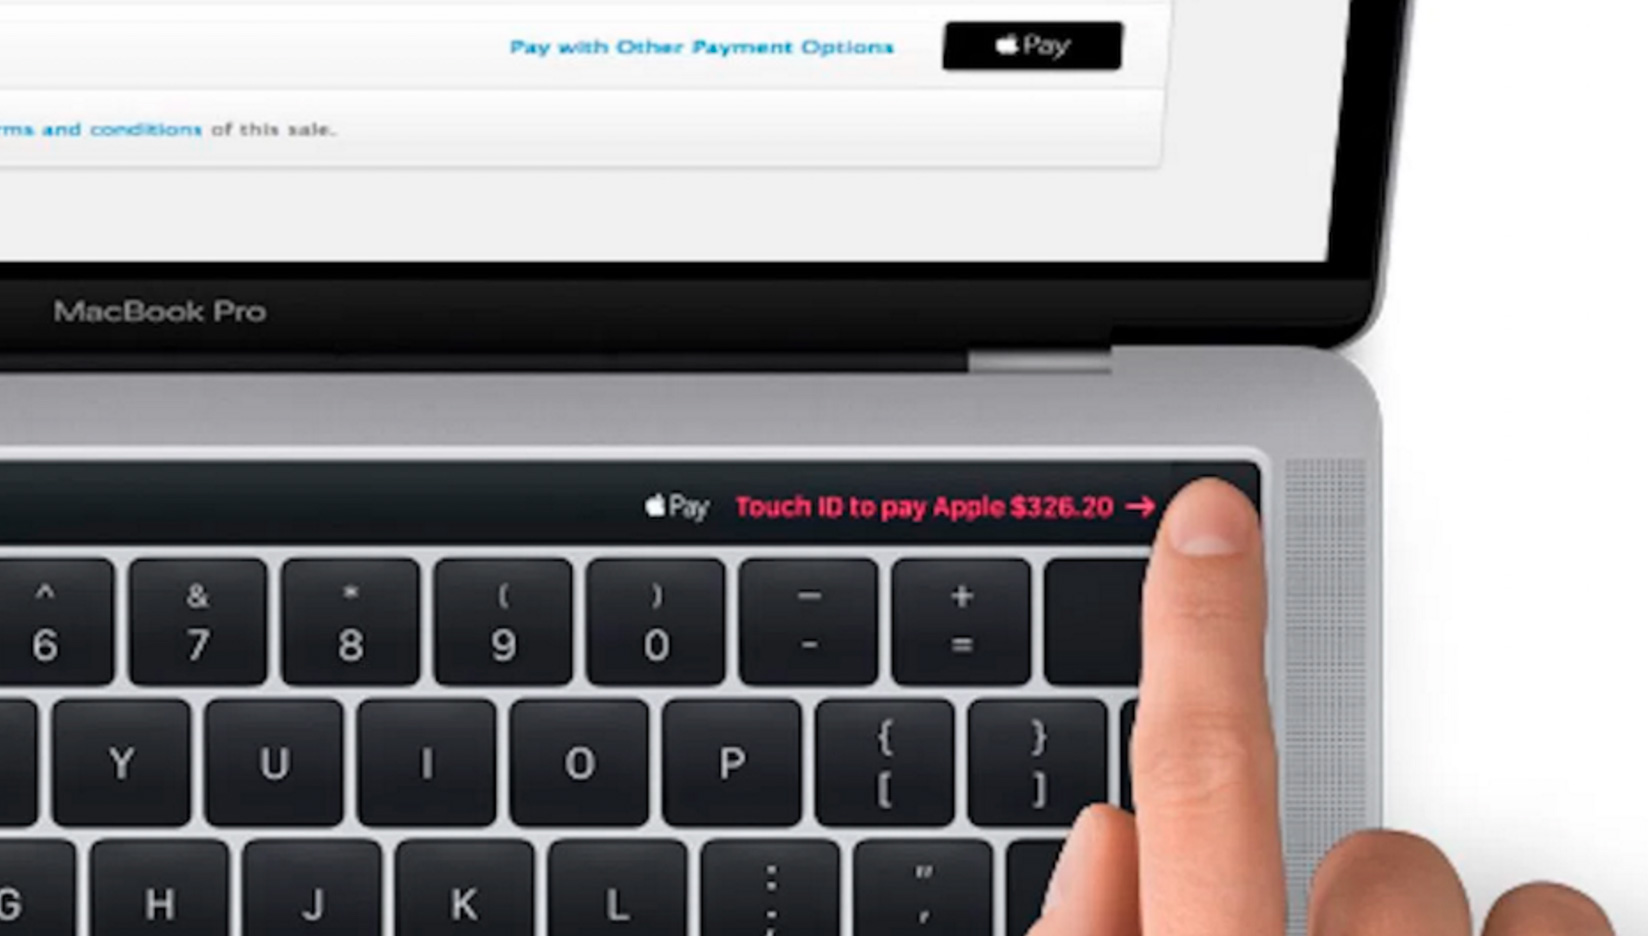 Pantalla Magic Toolbar mostrando un pago de Apple Pay